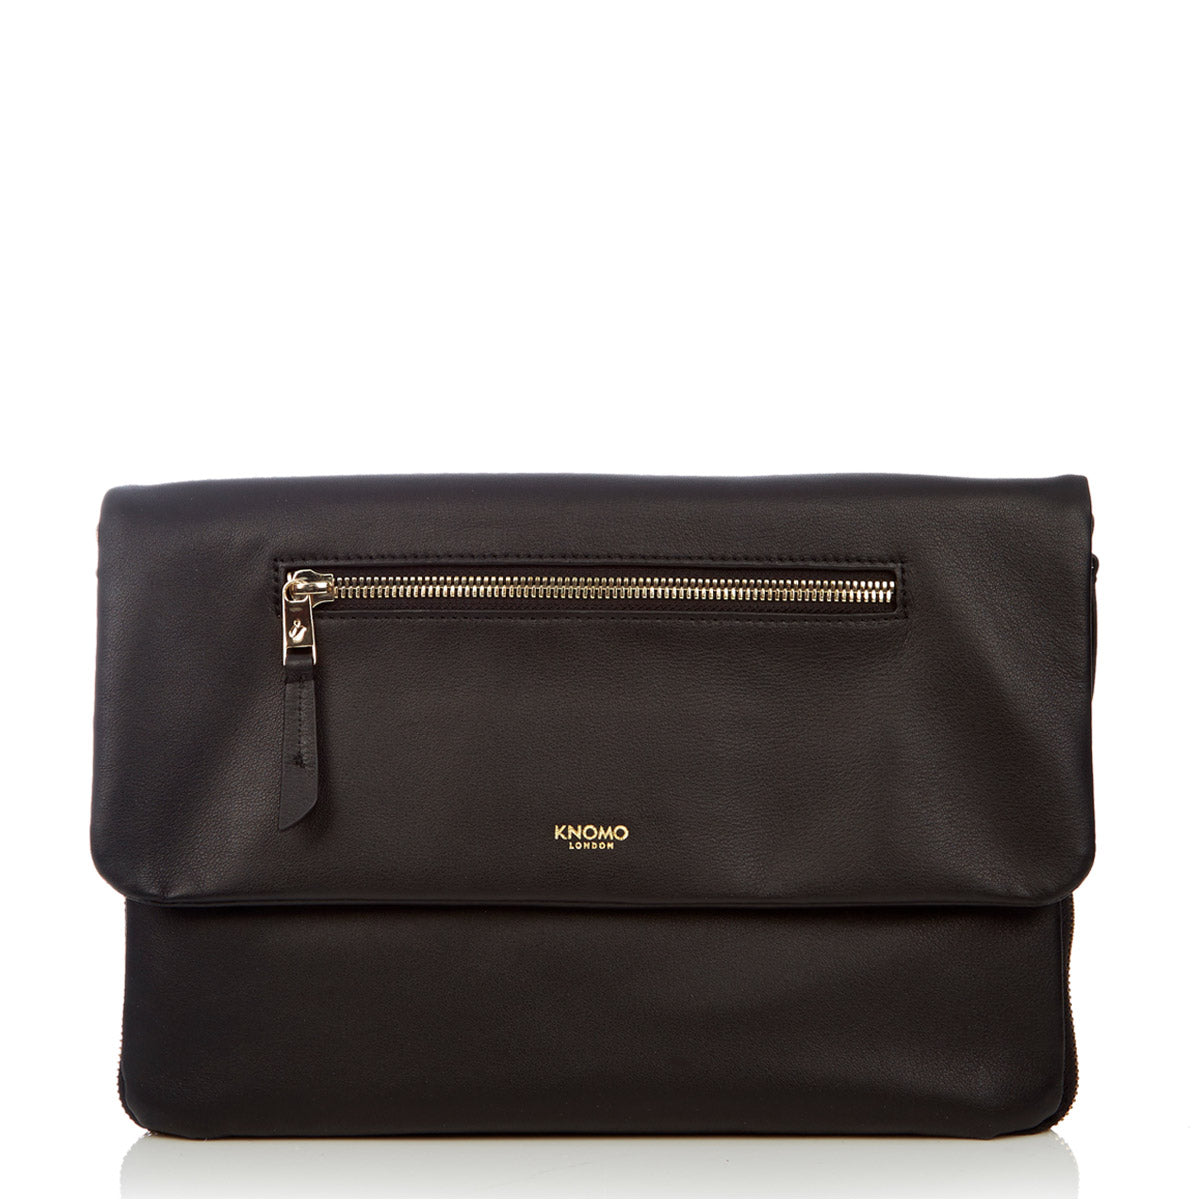 Leather Cross-Body Clutch Bag - 10""